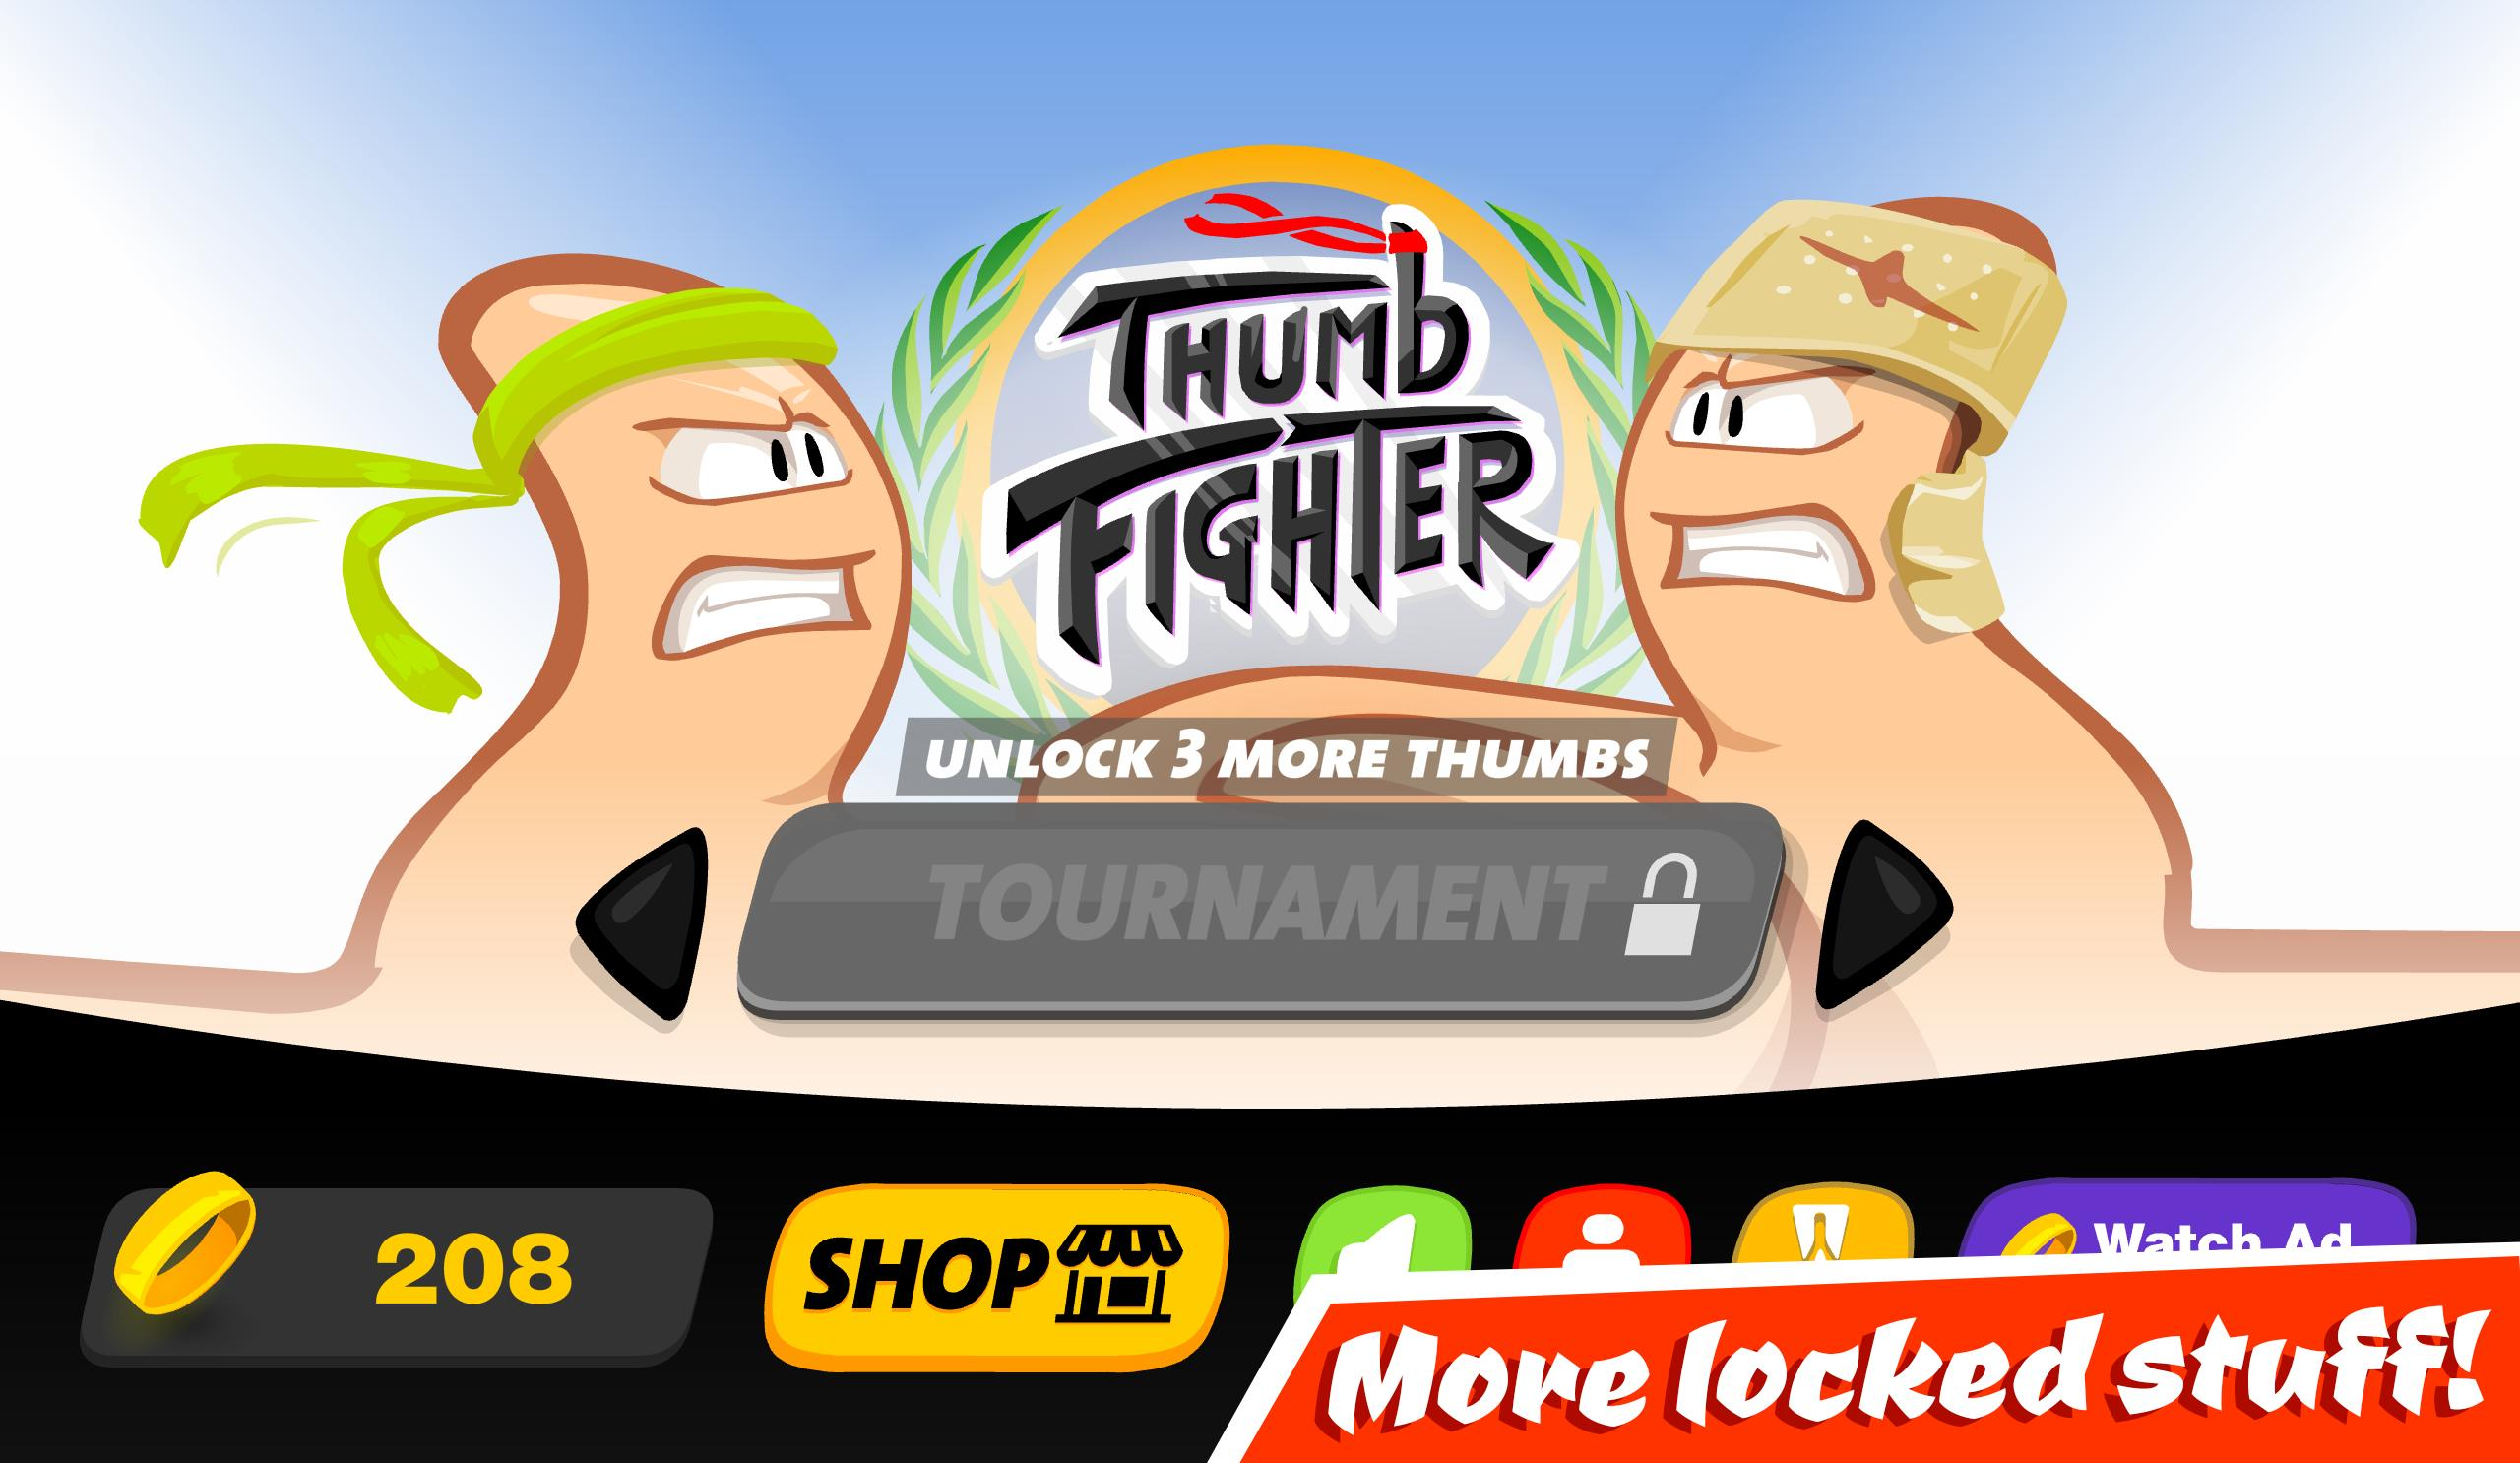 Thumb Fighter 👍 1.4.053 Screenshot 6